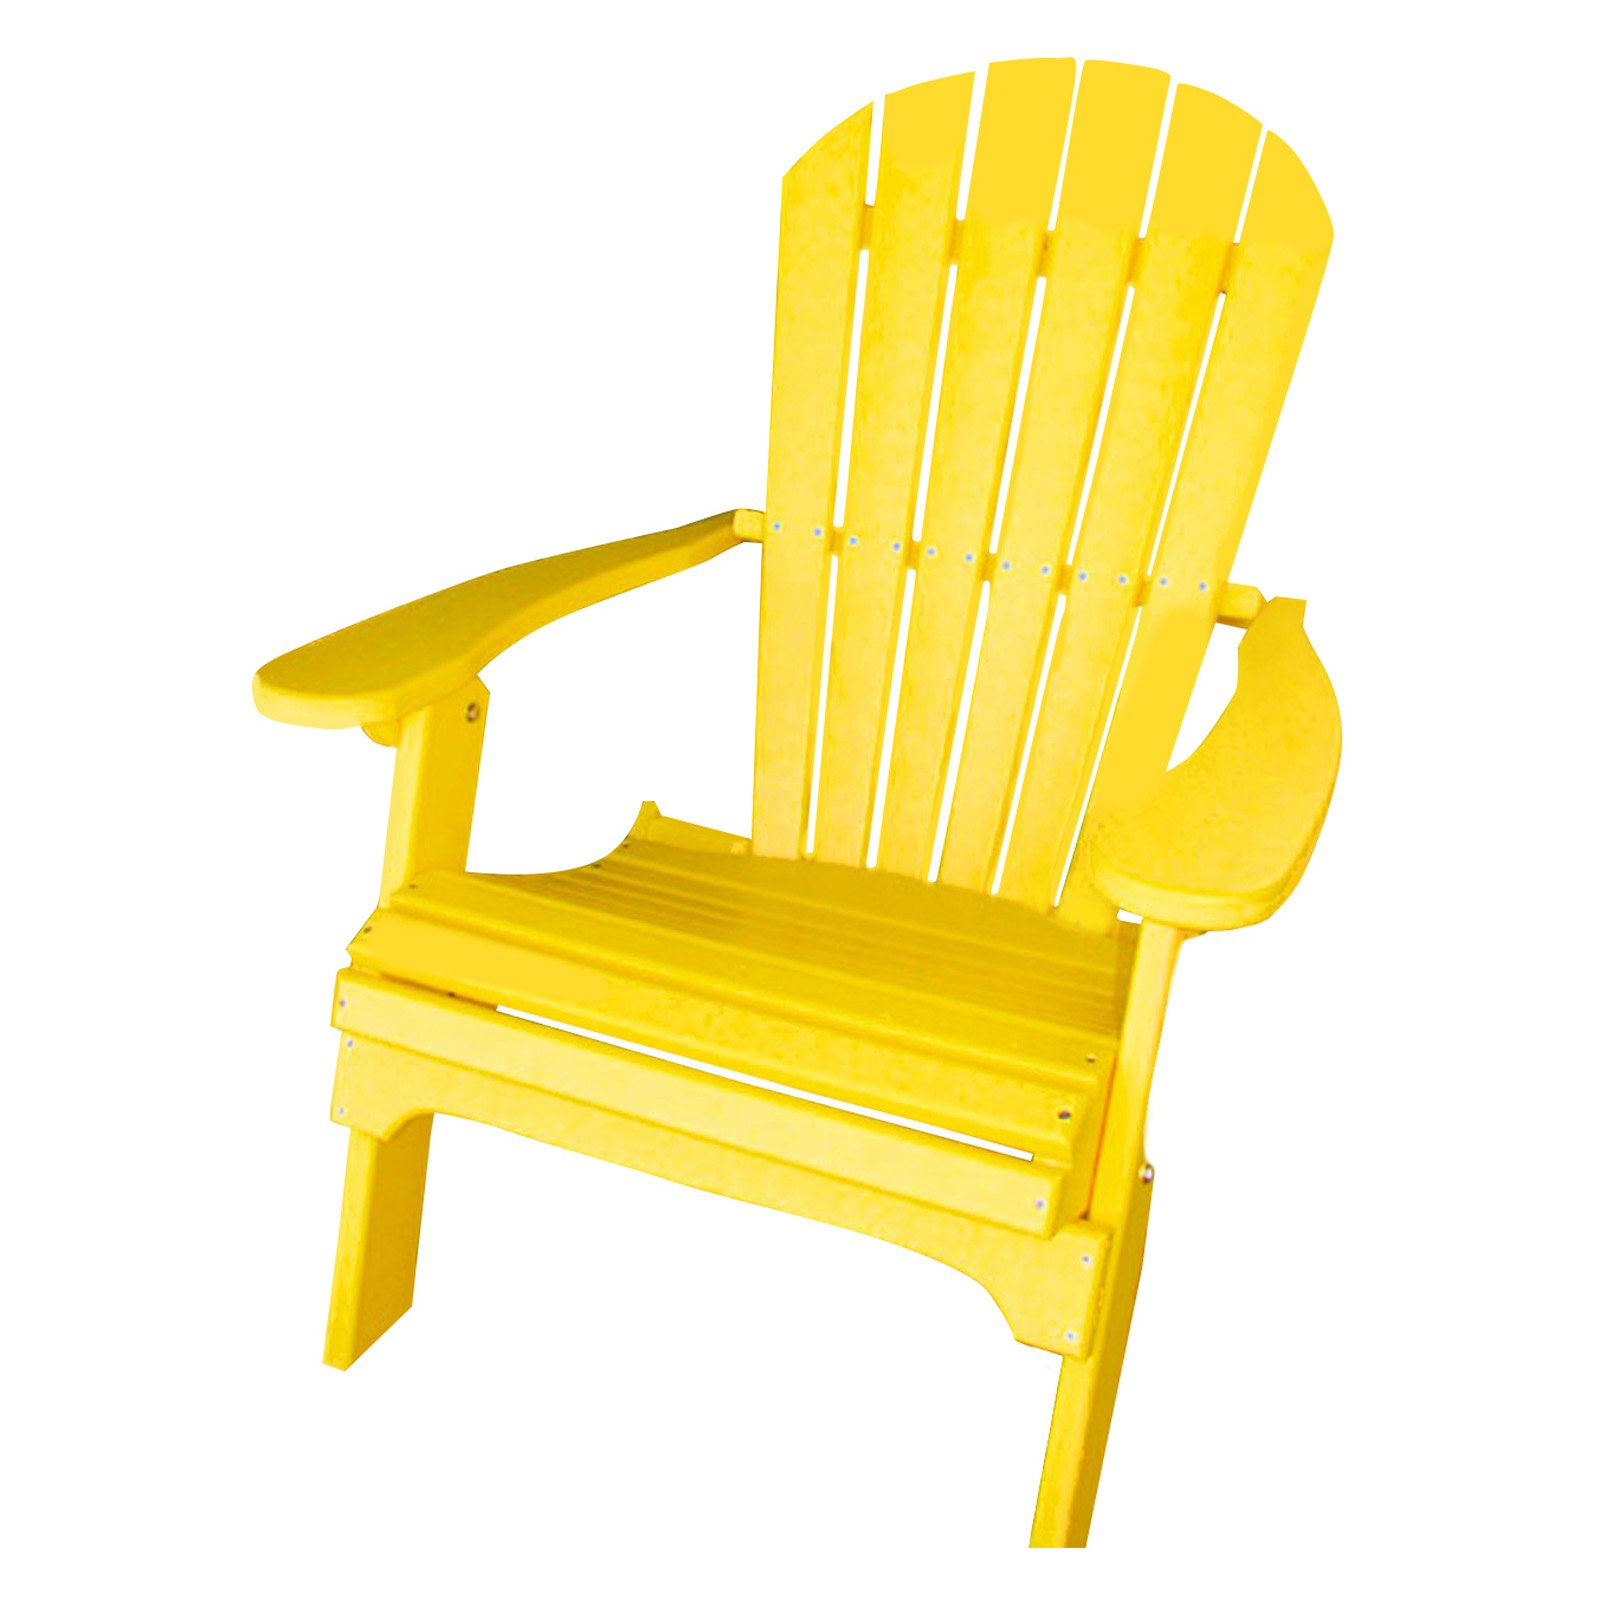 Charmant Phat Tommy Recycled Plastic Folding Adirondack Chair